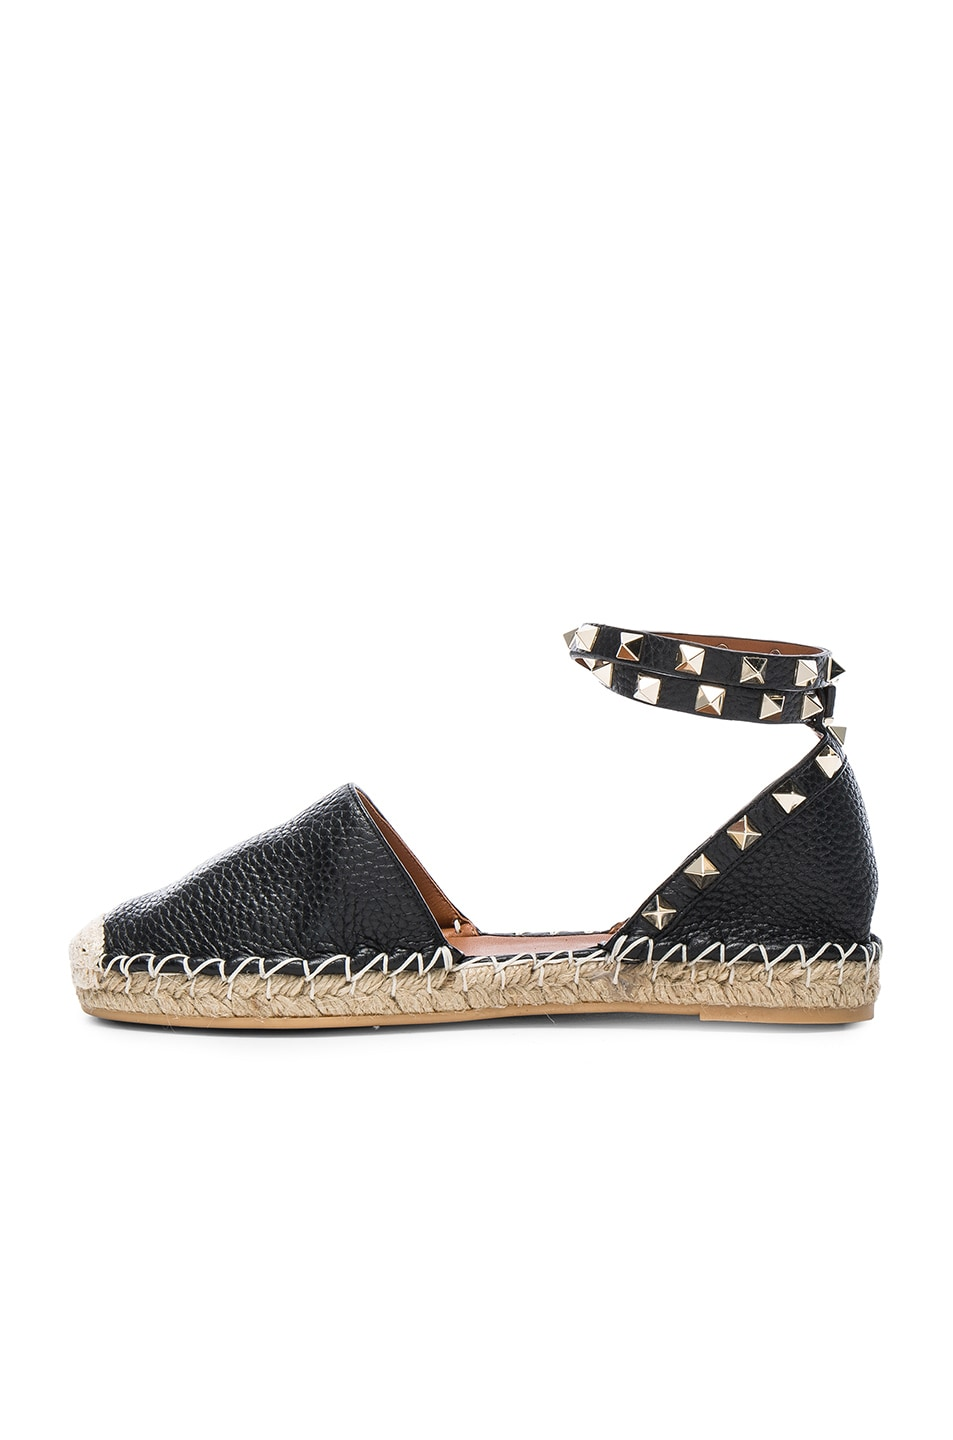 Image 5 of Valentino Rockstud Double Flat Leather Espadrilles in Black